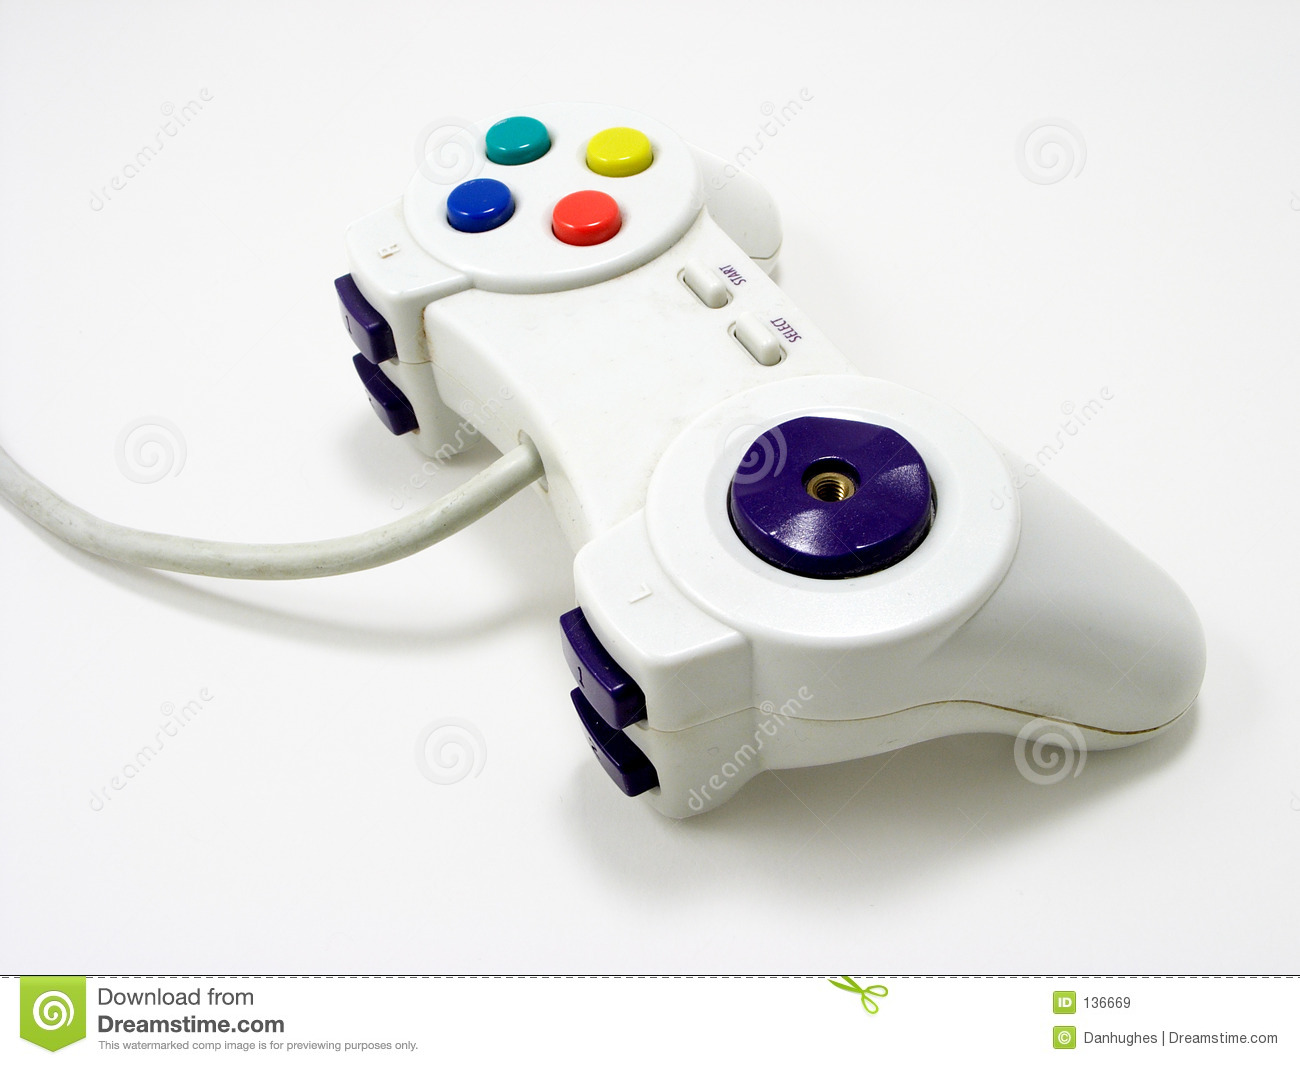 PC game controller stock image  Image of action, microsoft